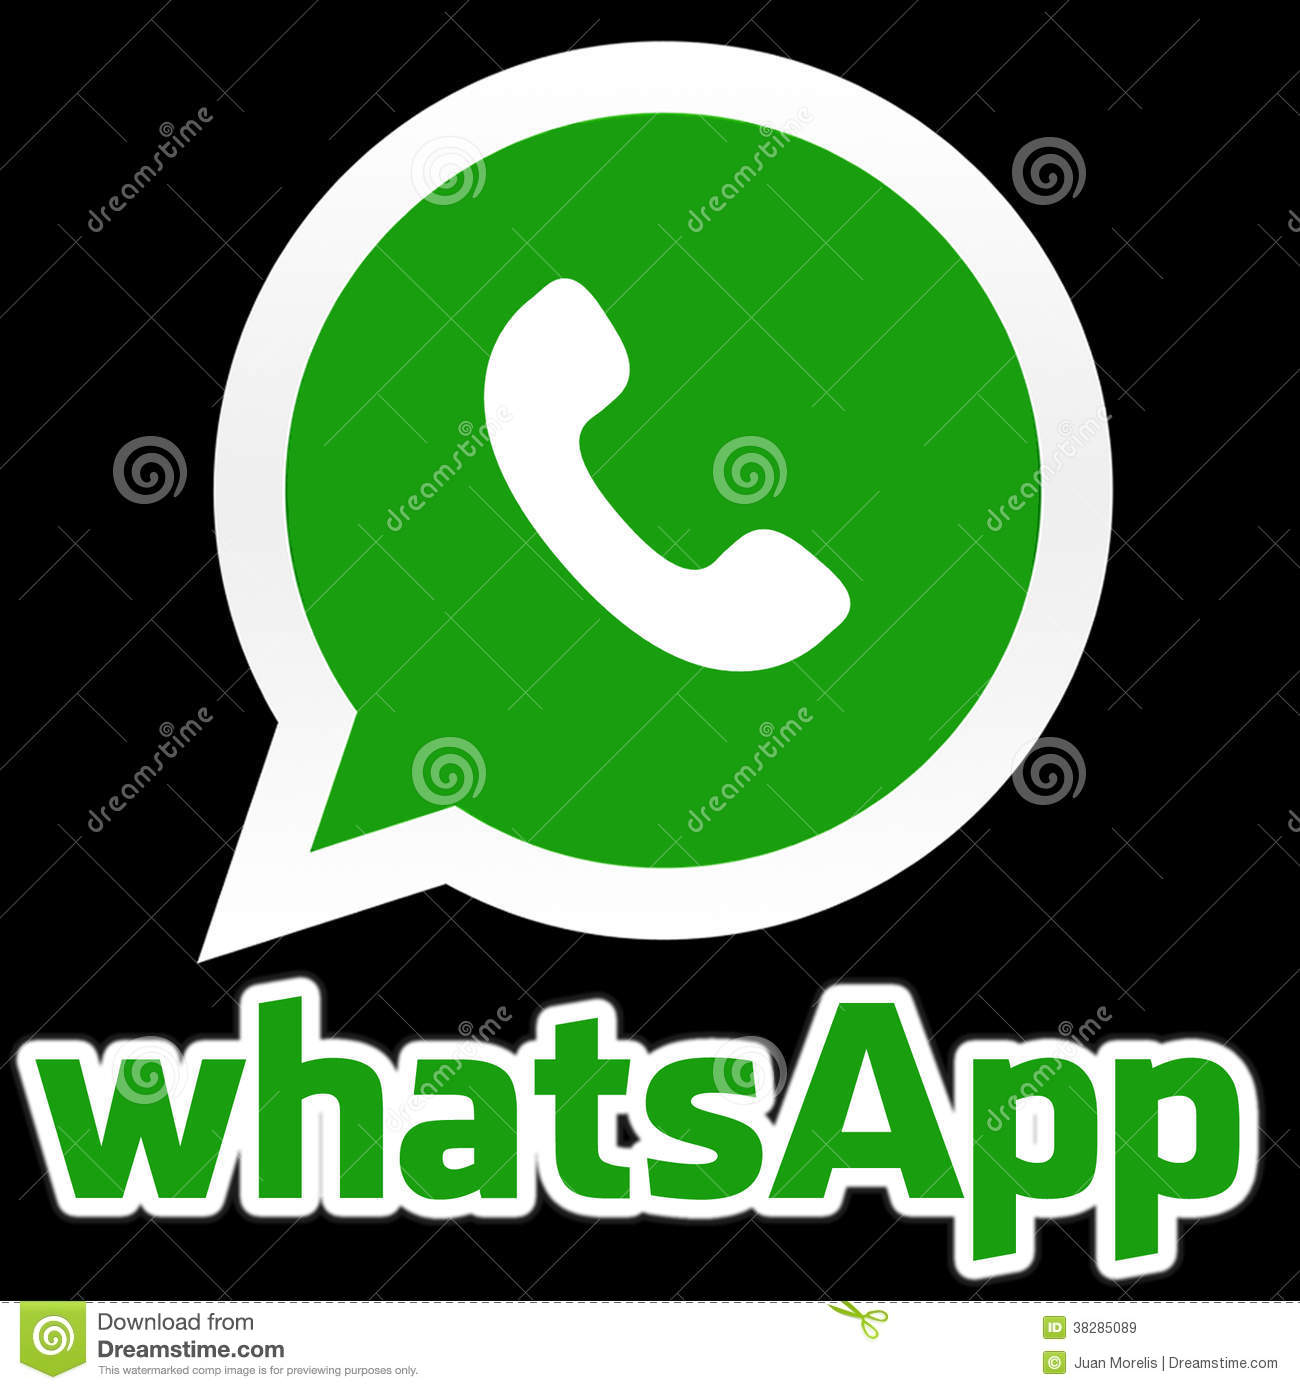 Whatsapp icon to use wherever you like with black background.